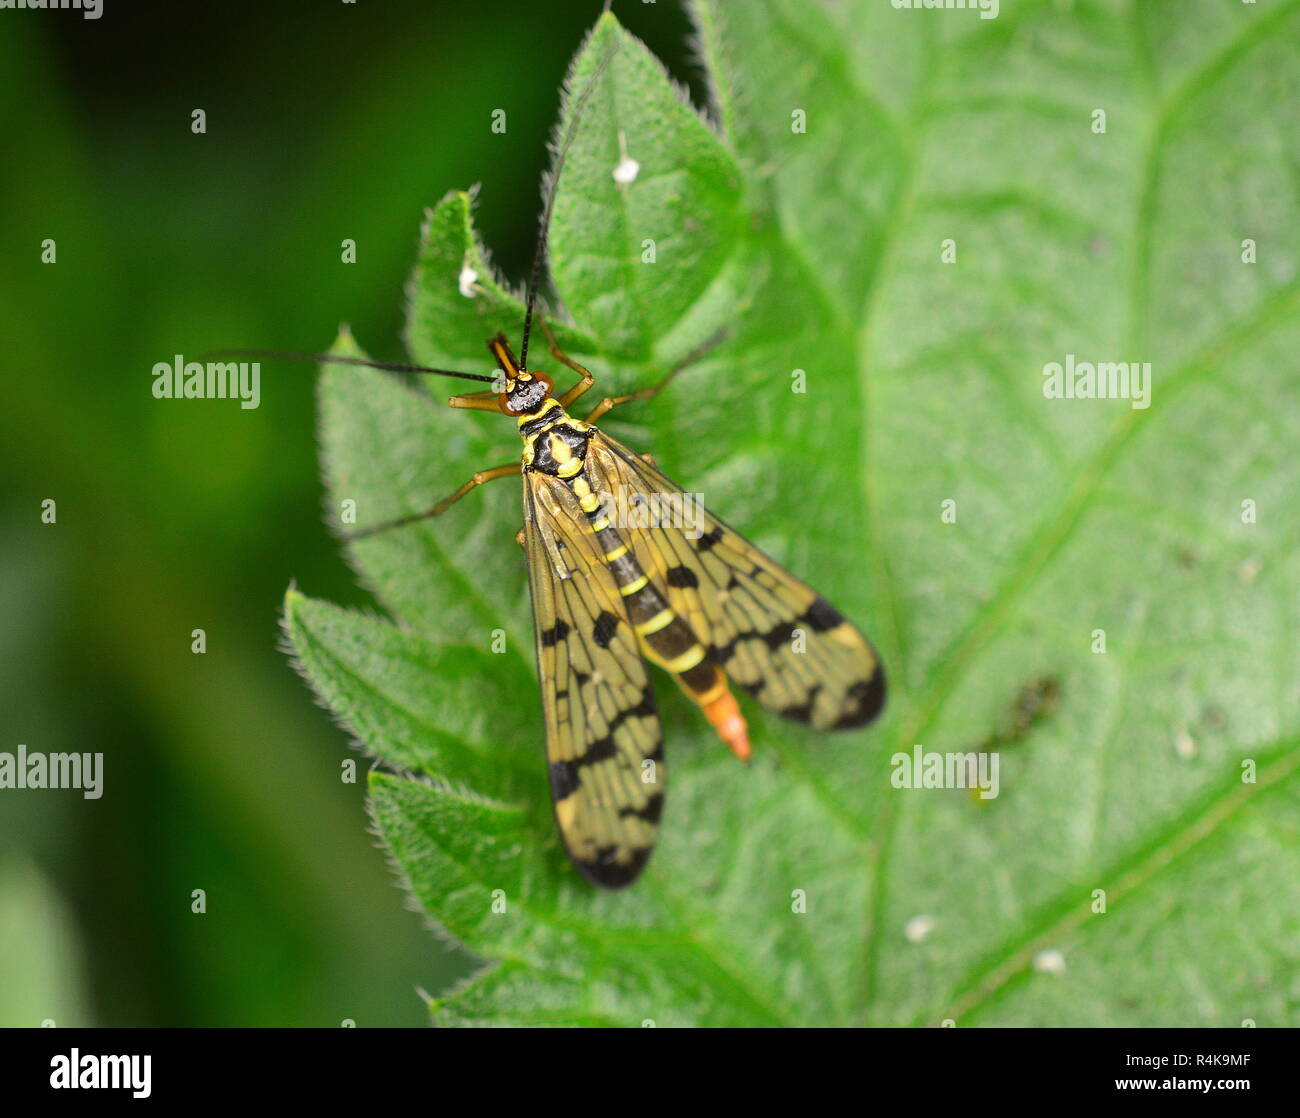 Scorpionfly Panorpa Communis, not a scorpion at all and certainly not going to sting - Stock Image